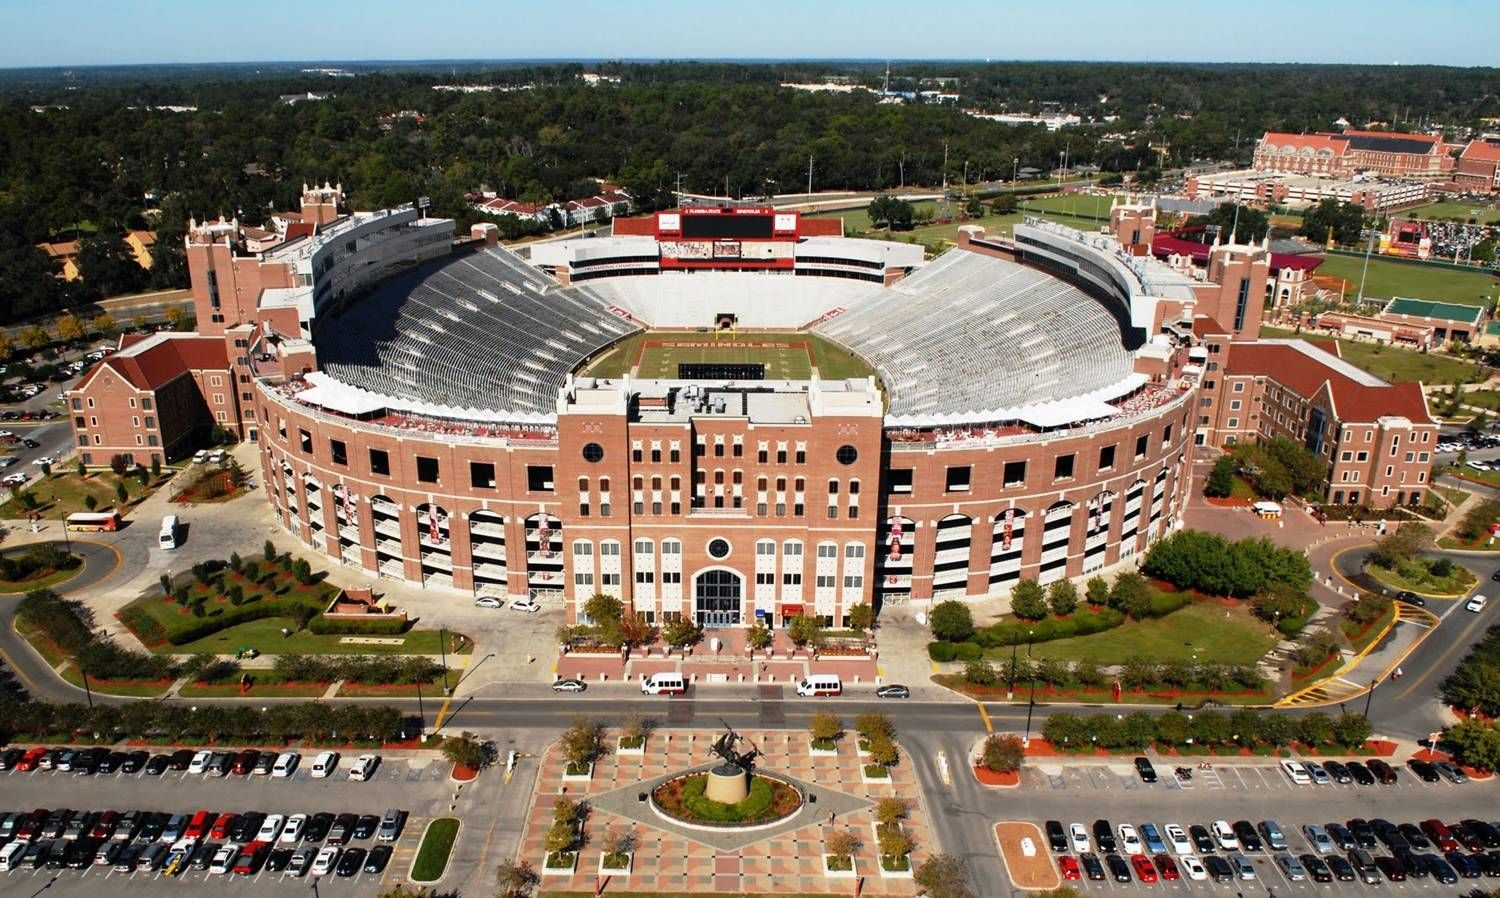 fsu florida state university seminoles low aerial of bobby fsu florida state university seminoles low aerial of bobby bowden field at doak campbell